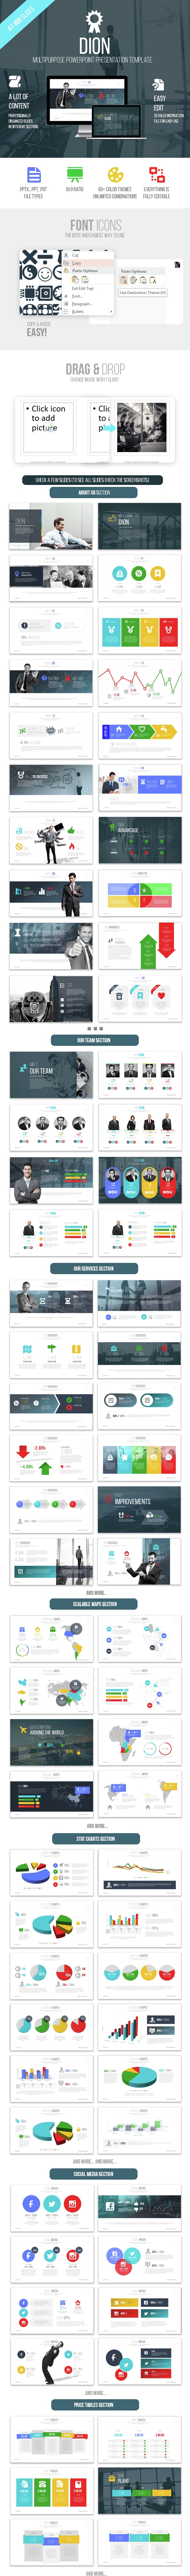 Dion Powerpoint Presentation Template - Business PowerPoint Templates